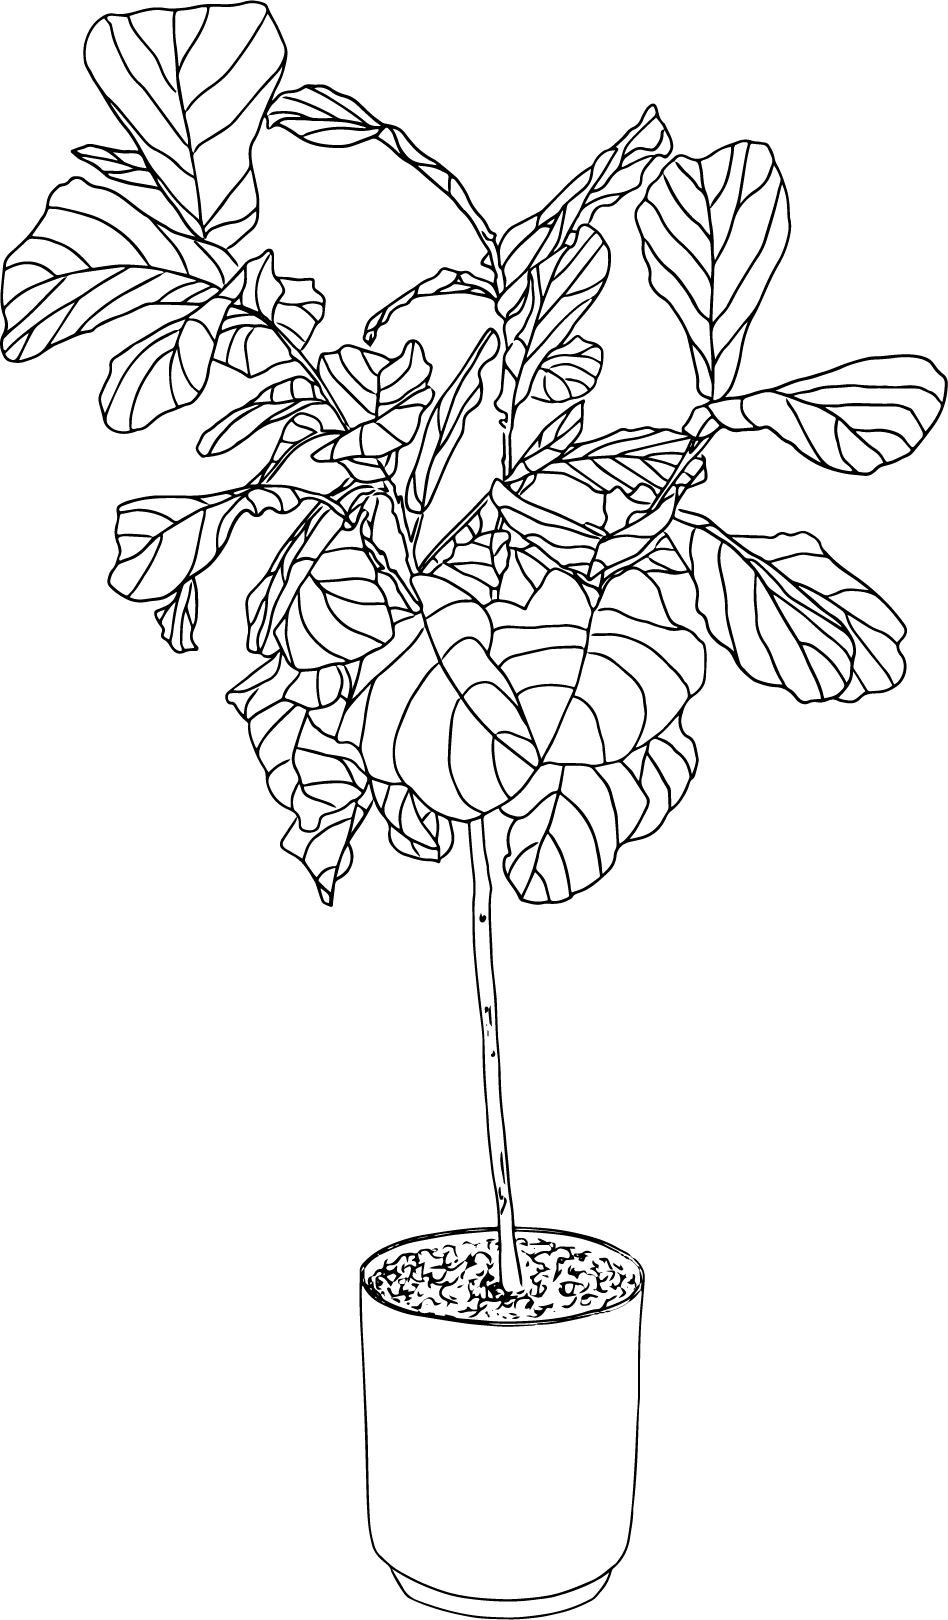 fiddle fig.png